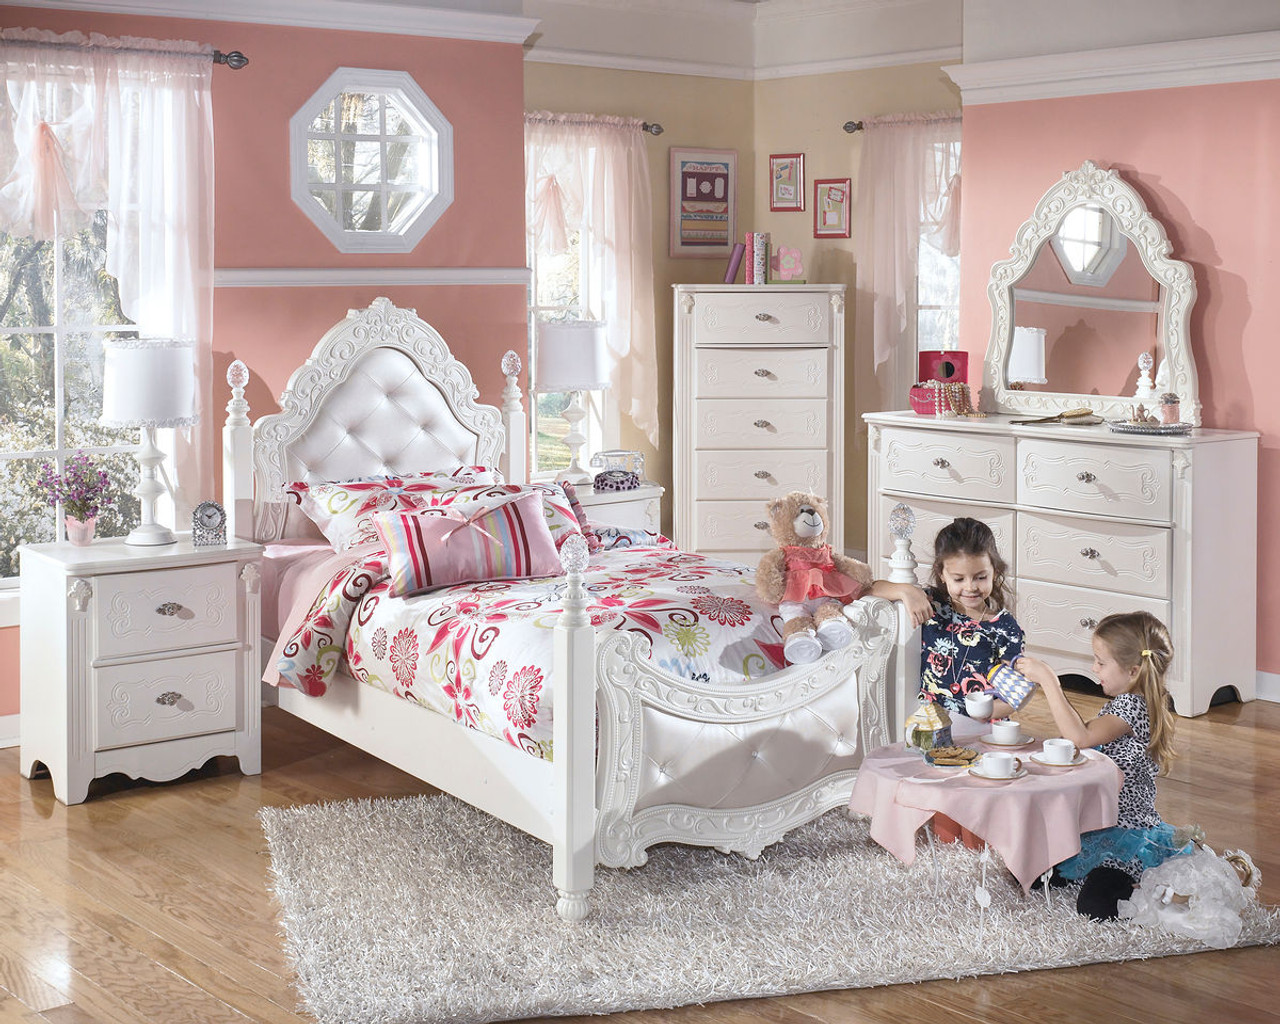 The Exquisite White 7 Pc Twin Kids Bedroom Collection Available At 5 Star Furniture Serving Houston Tx And Surrounding Areas